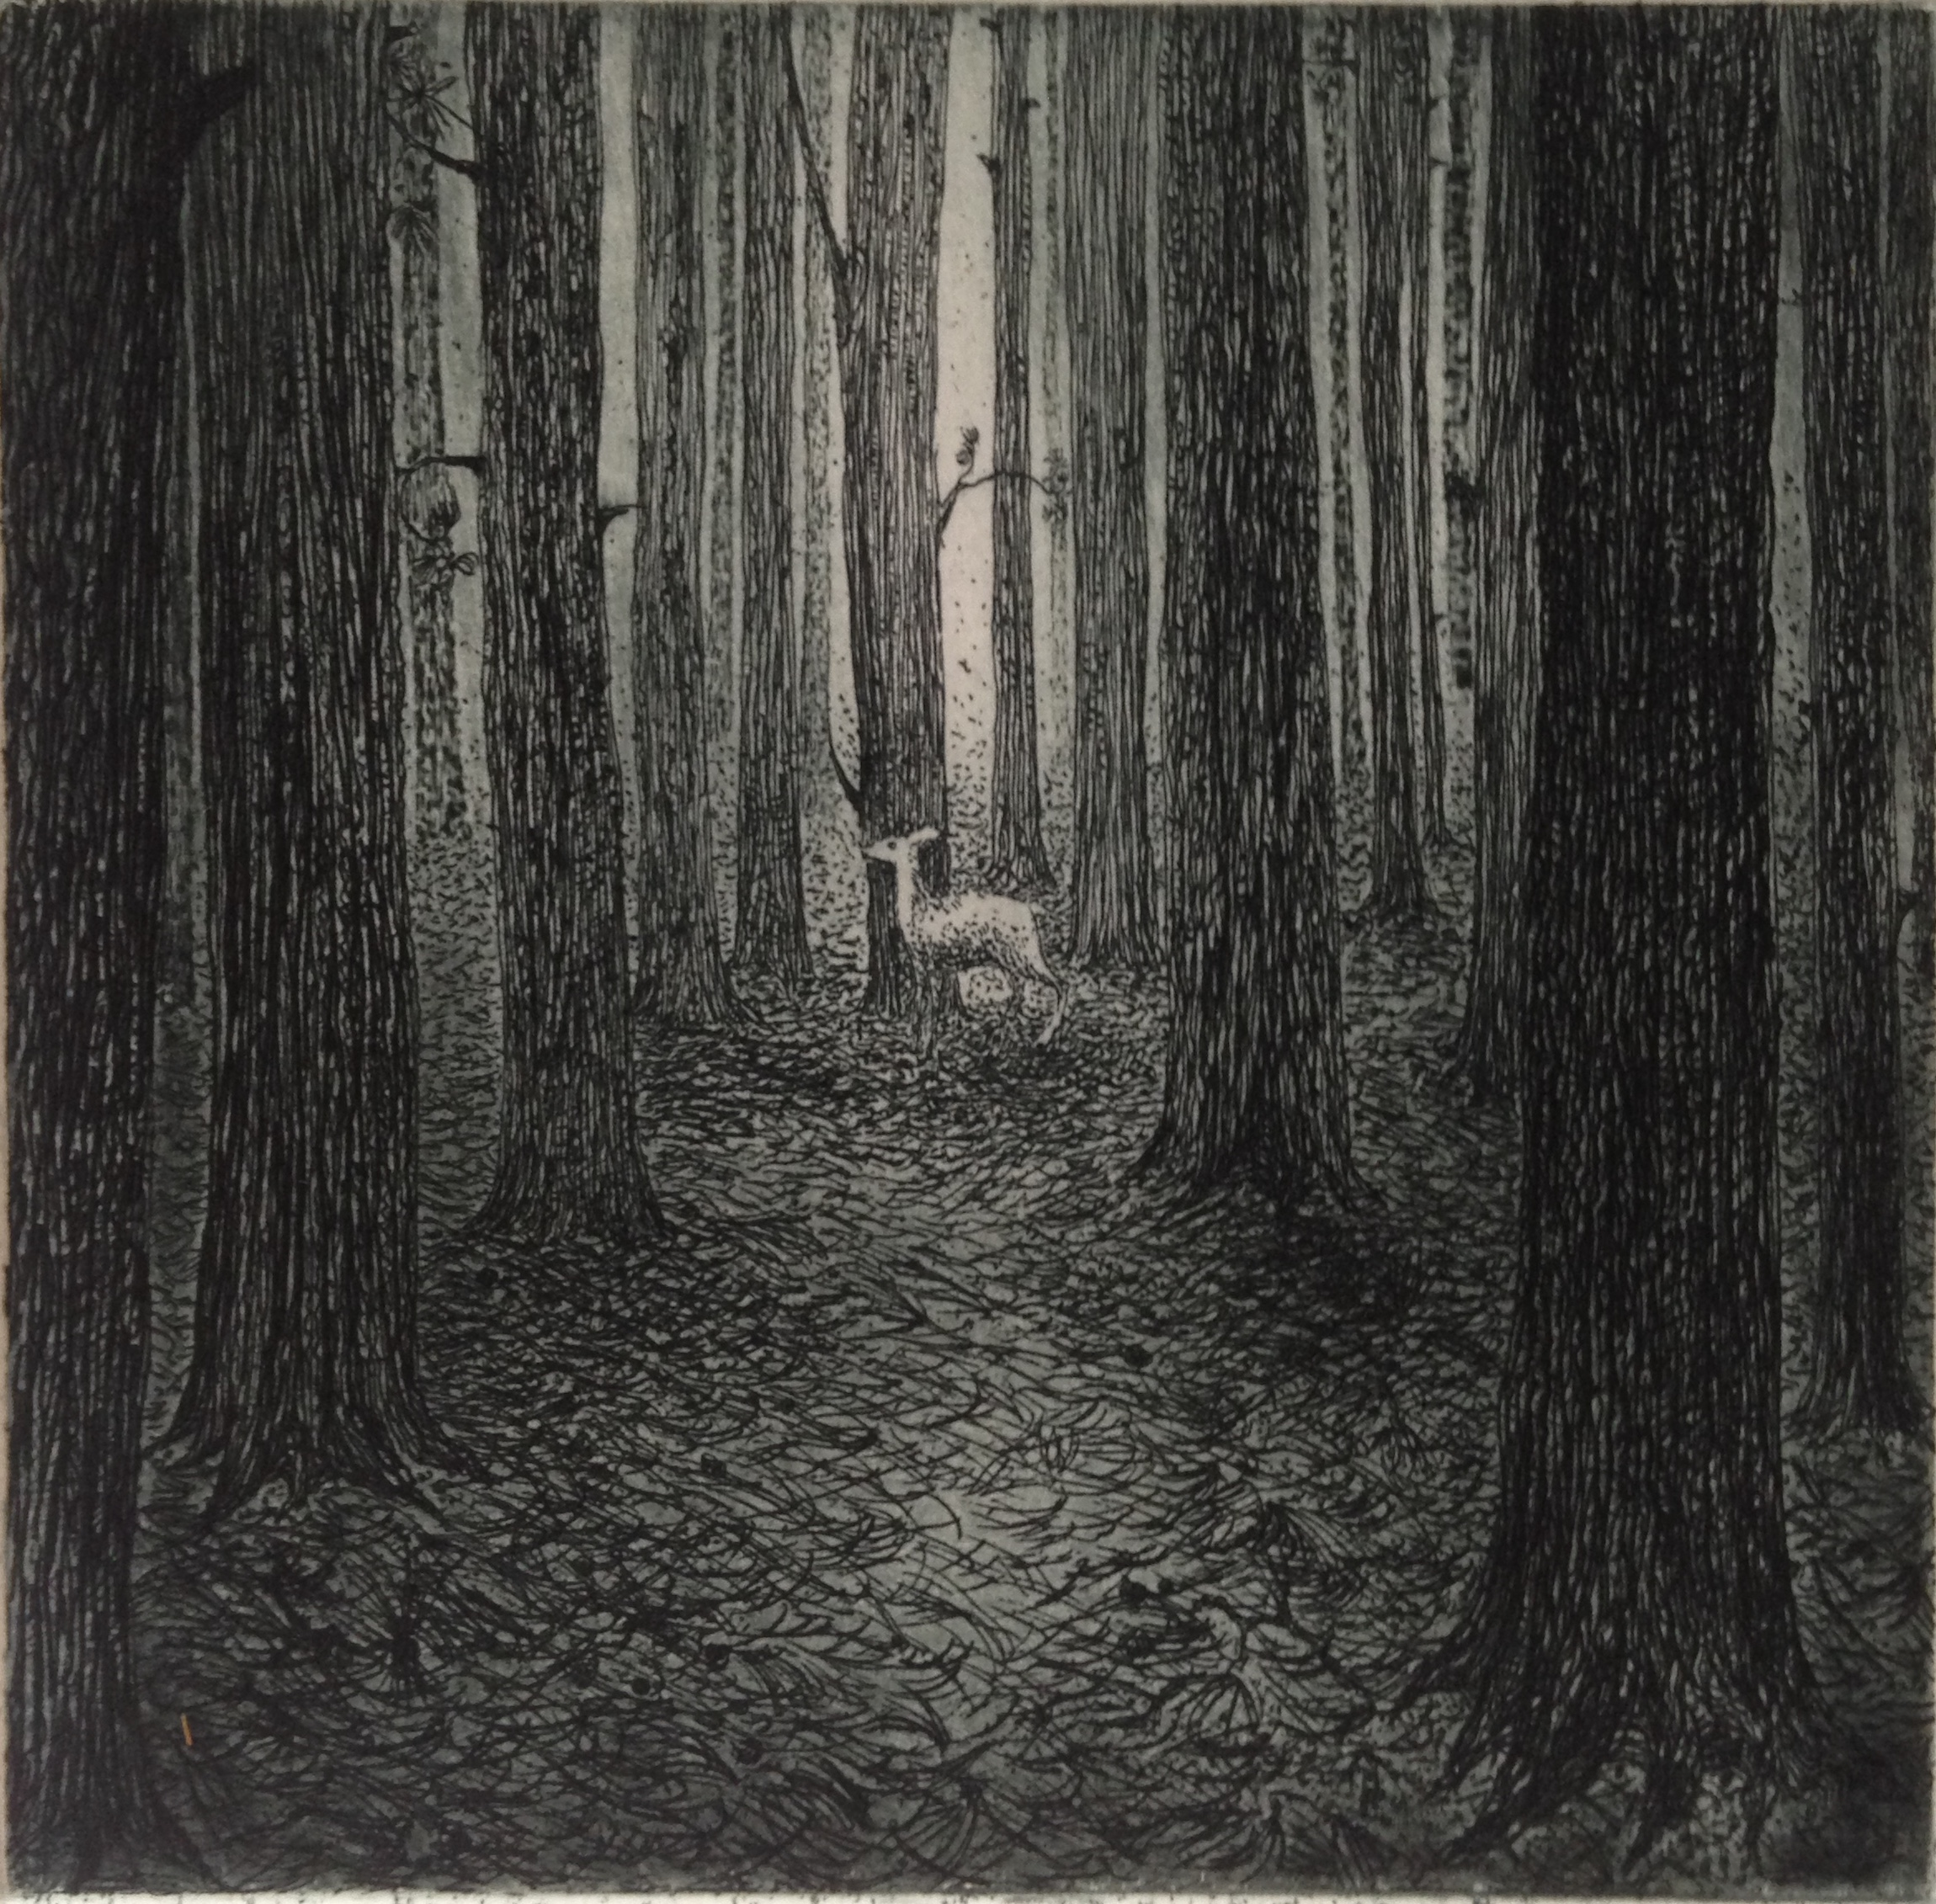 A forest - Etching - Flora McLachlan - SOLD